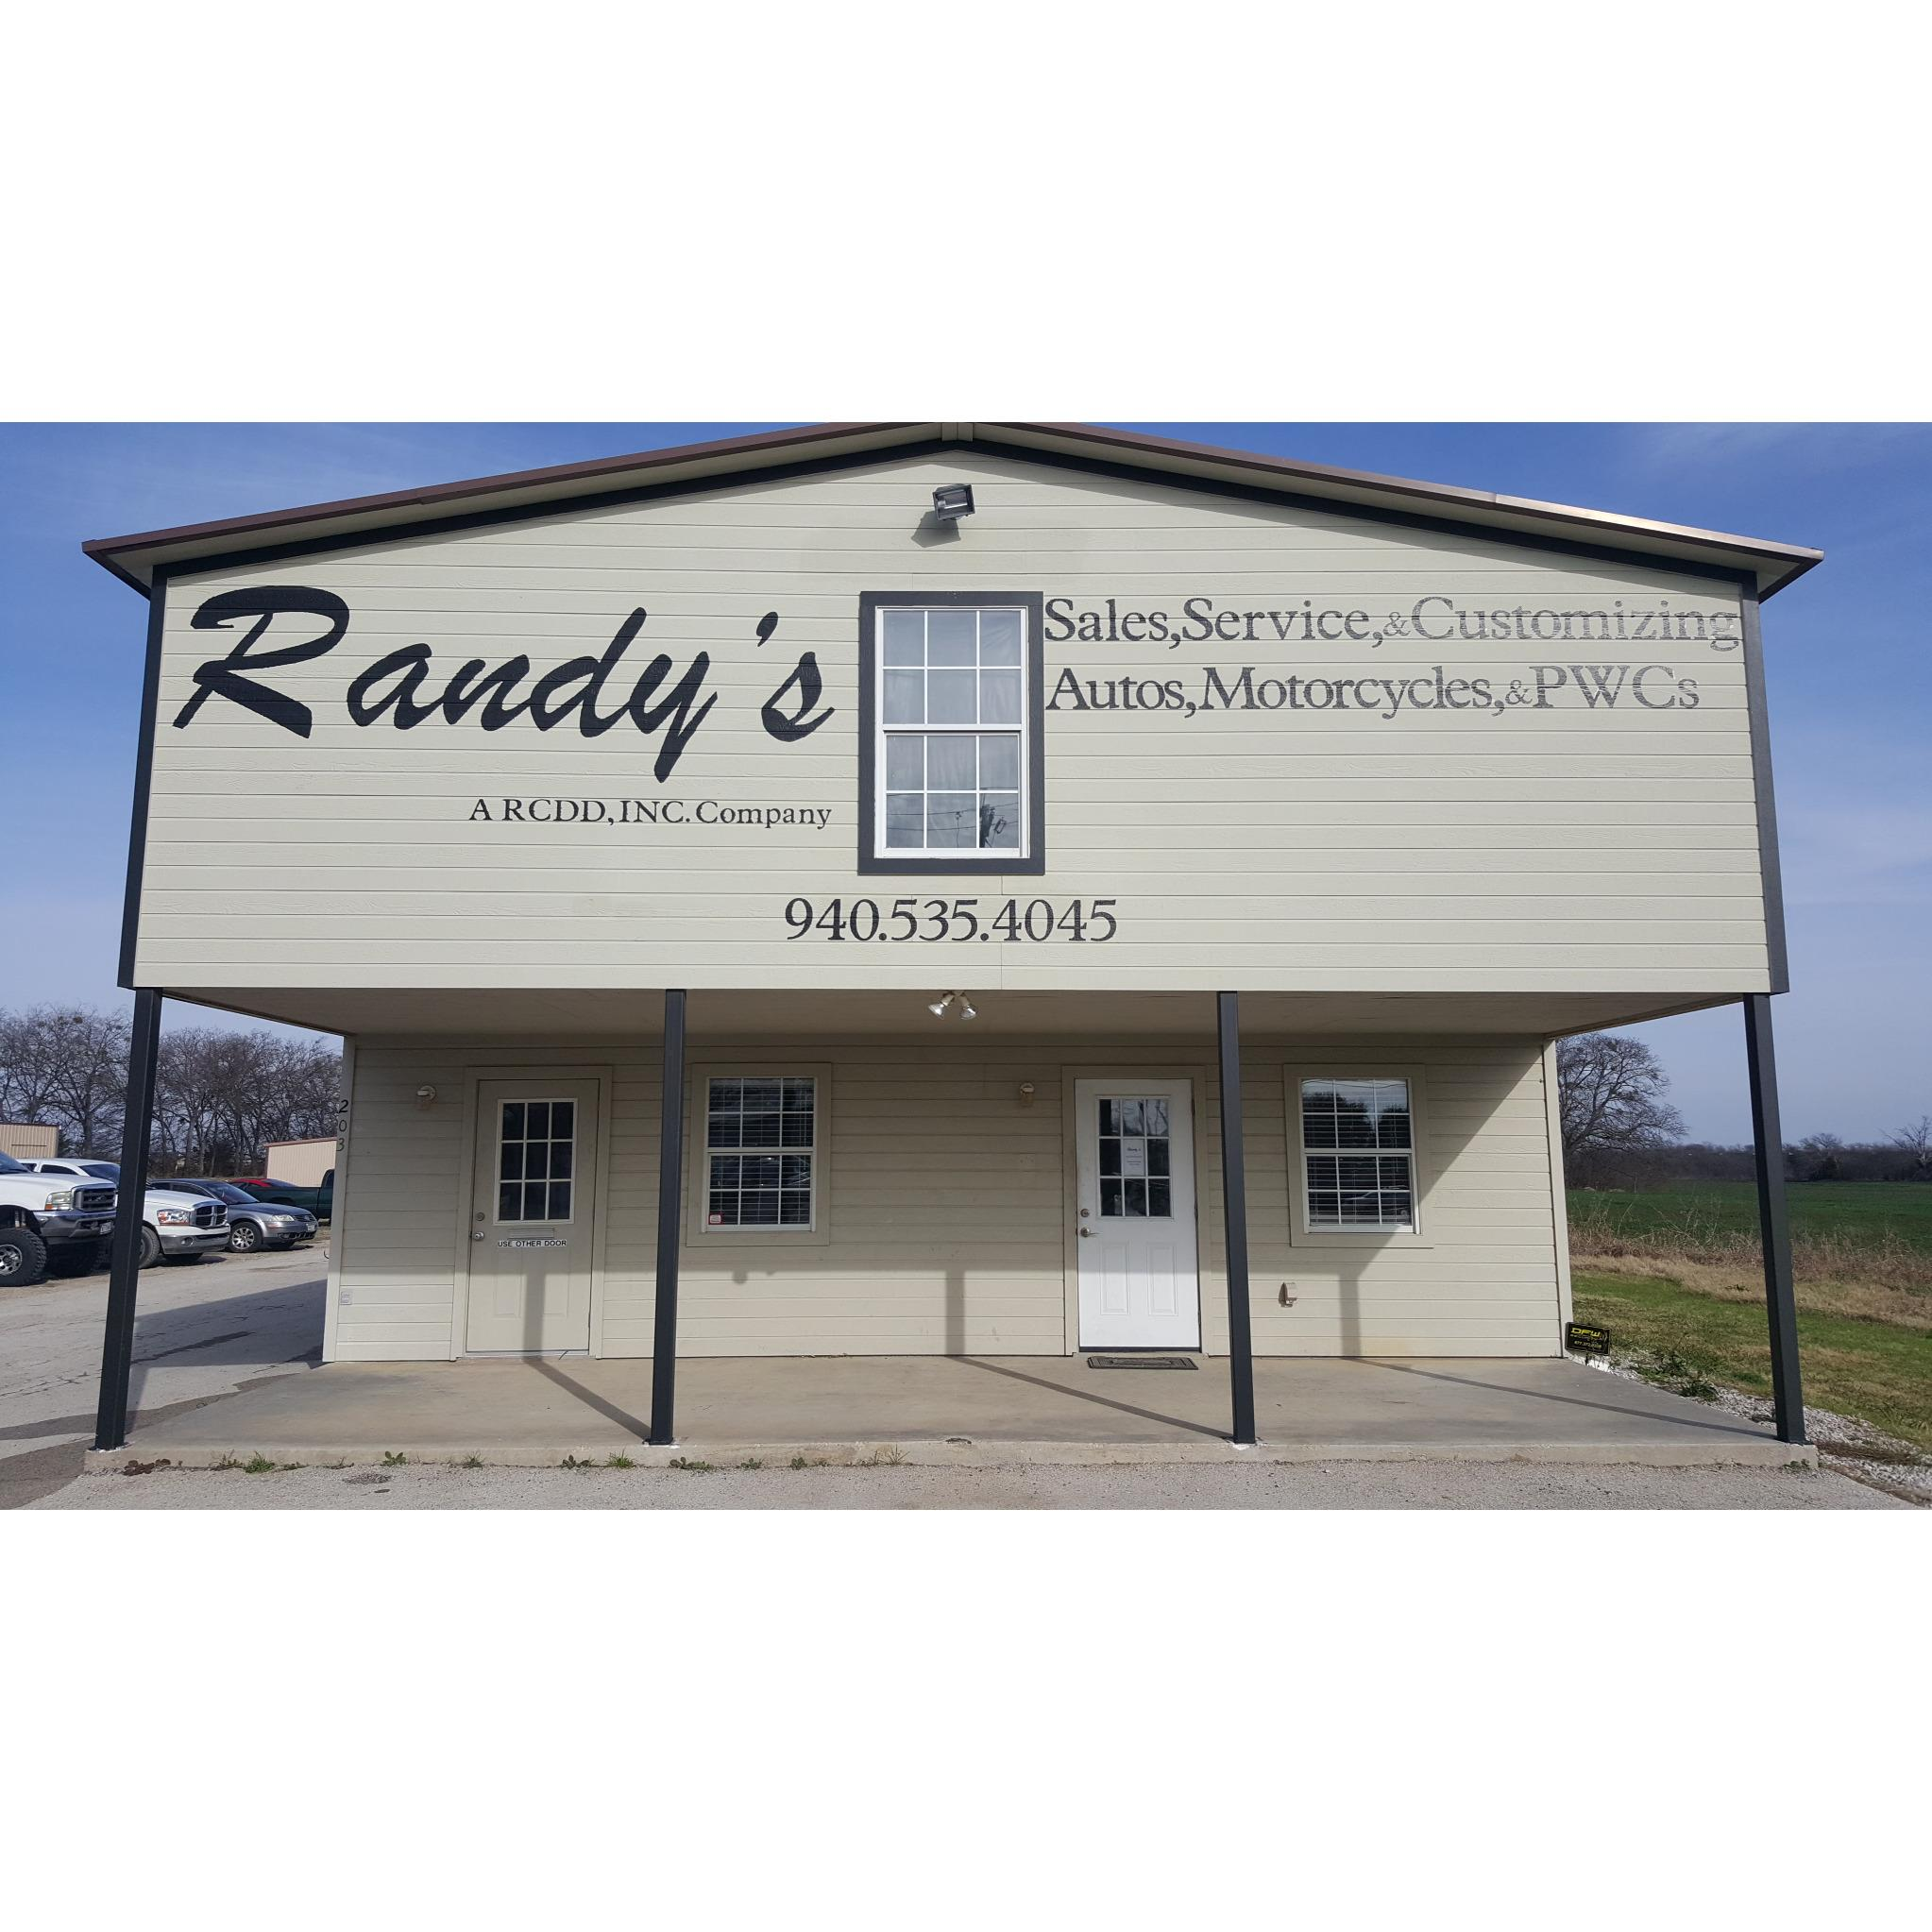 Randy's of Sanger